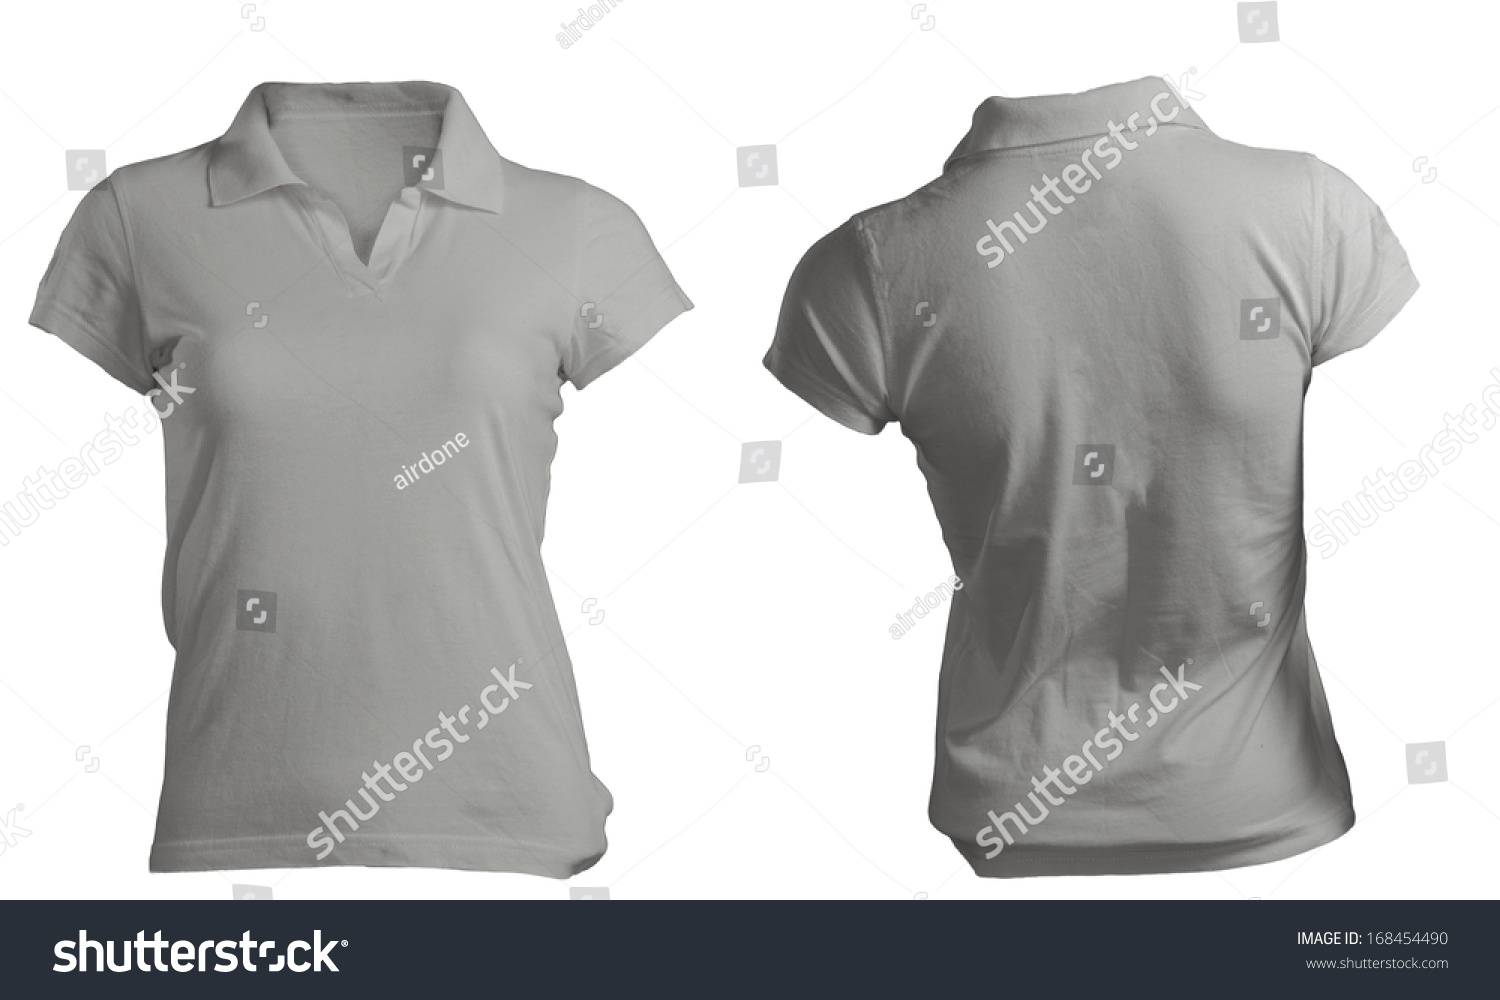 Blank black t shirt front and back - Women S Blank Grey Polo Shirt Front And Back Design Template